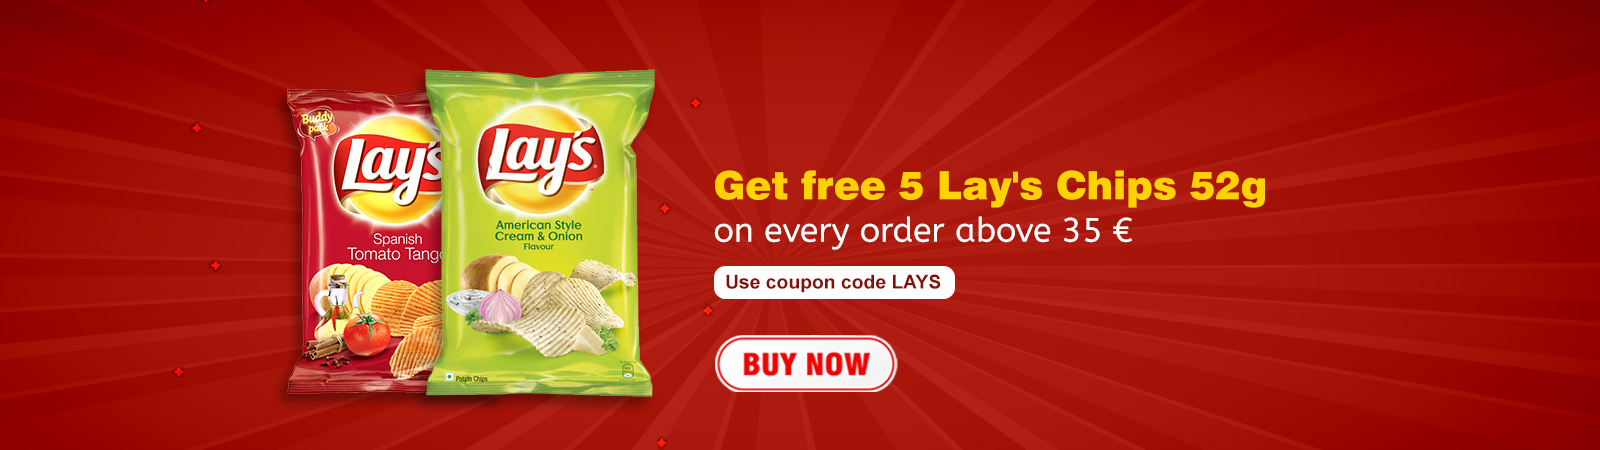 lays offers